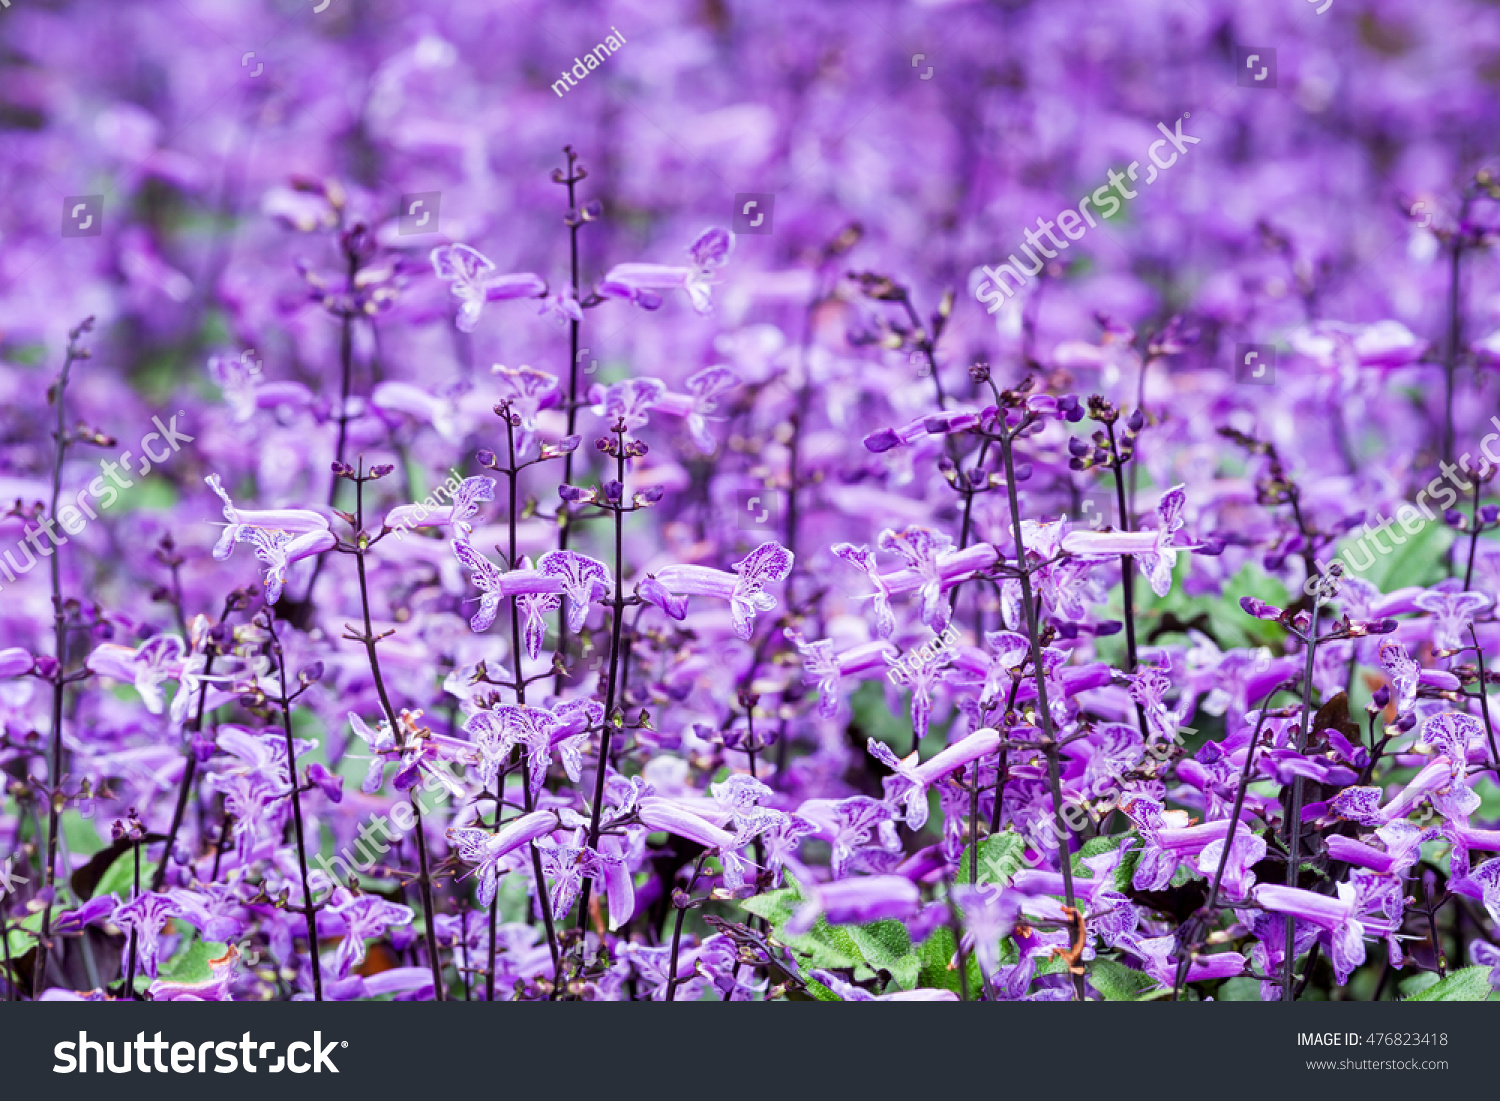 Many Small Purple White Flowers Blooming Stock Photo Edit Now